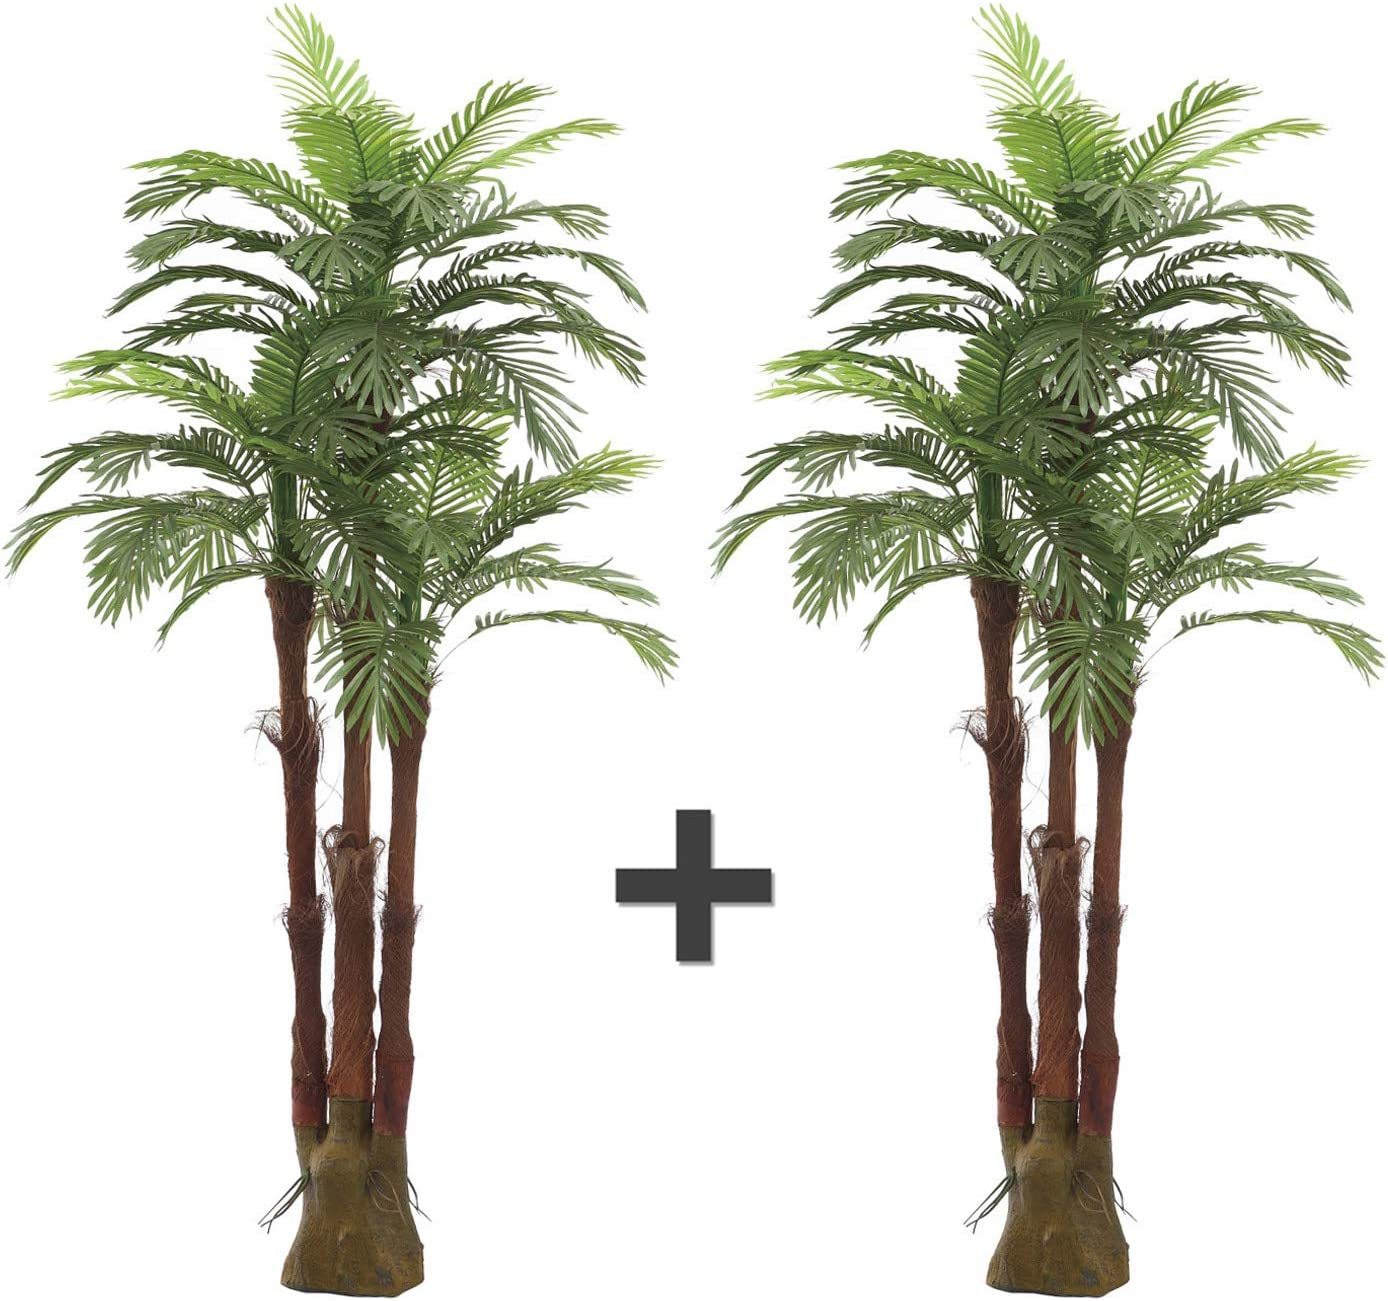 AMERIQUE AMPHP6FTPK2 Pair Gorgeous & Unique 6 Feet Triple Trunk Phoenix Palm Artificial Plant Tree, Real Touch Technology, with UV Protection, Super Quality, 6', Emerald Green, 2